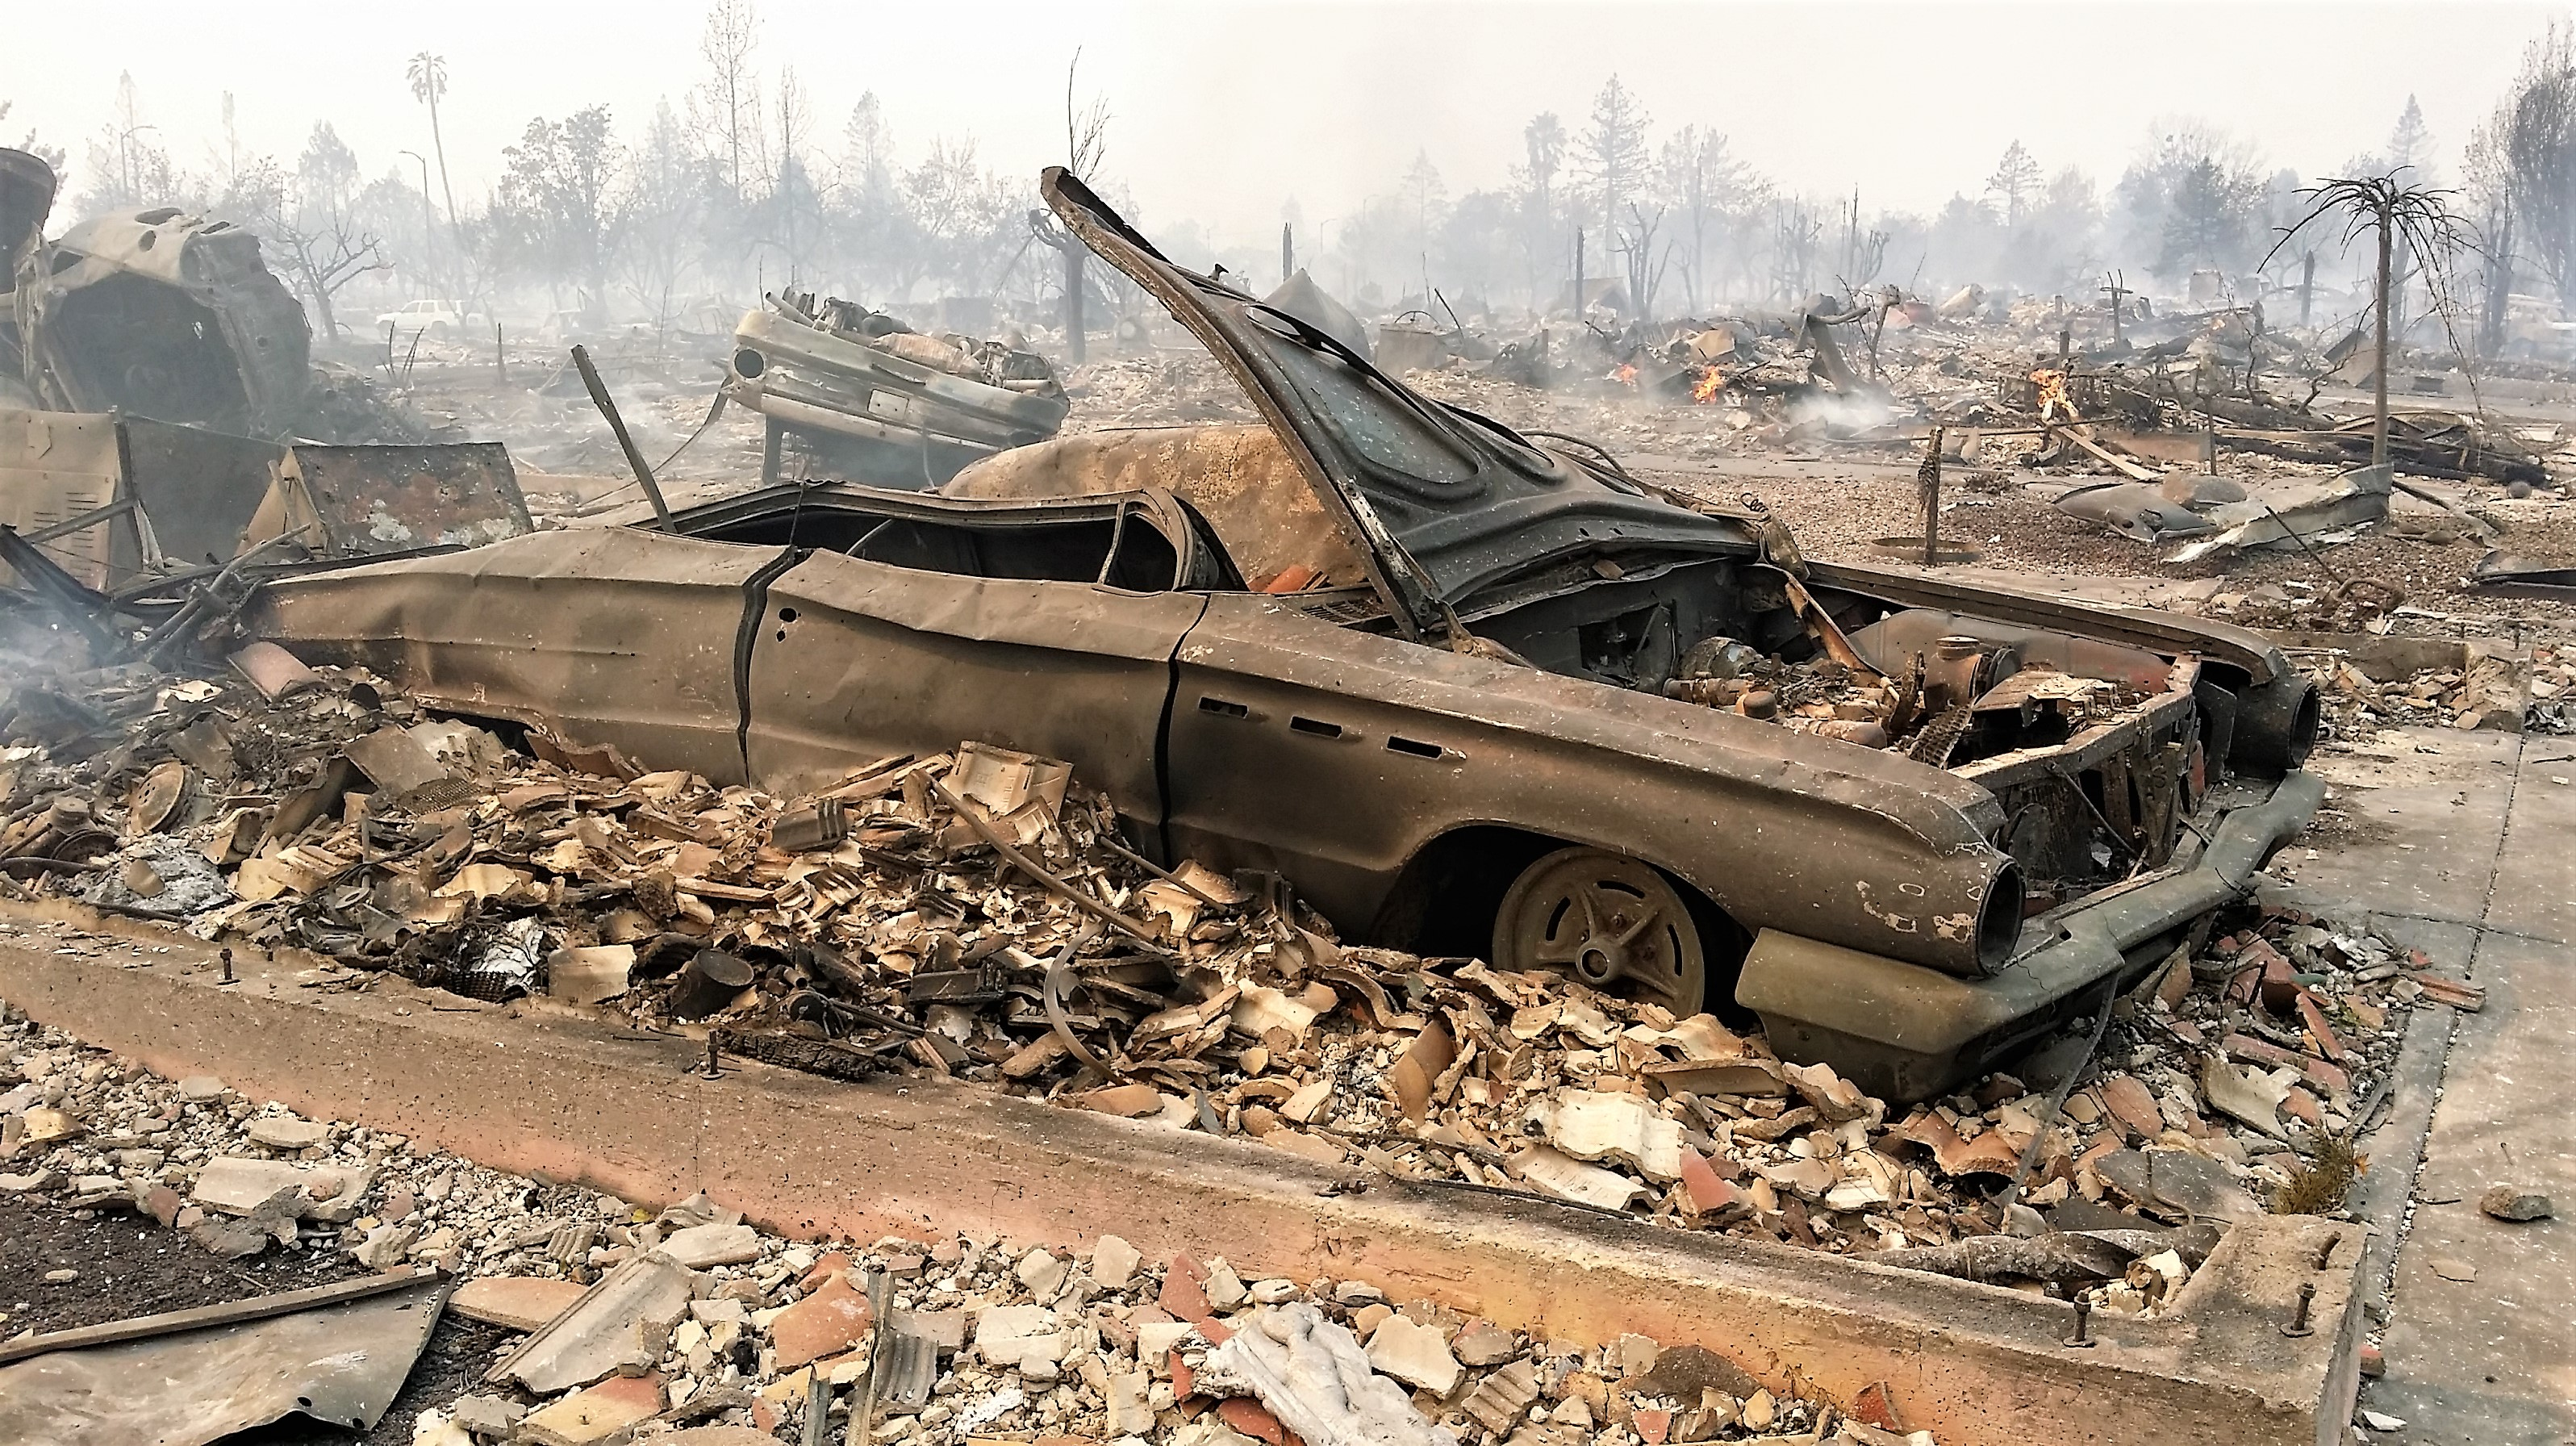 Classic cars burned in California fires add to the devastation